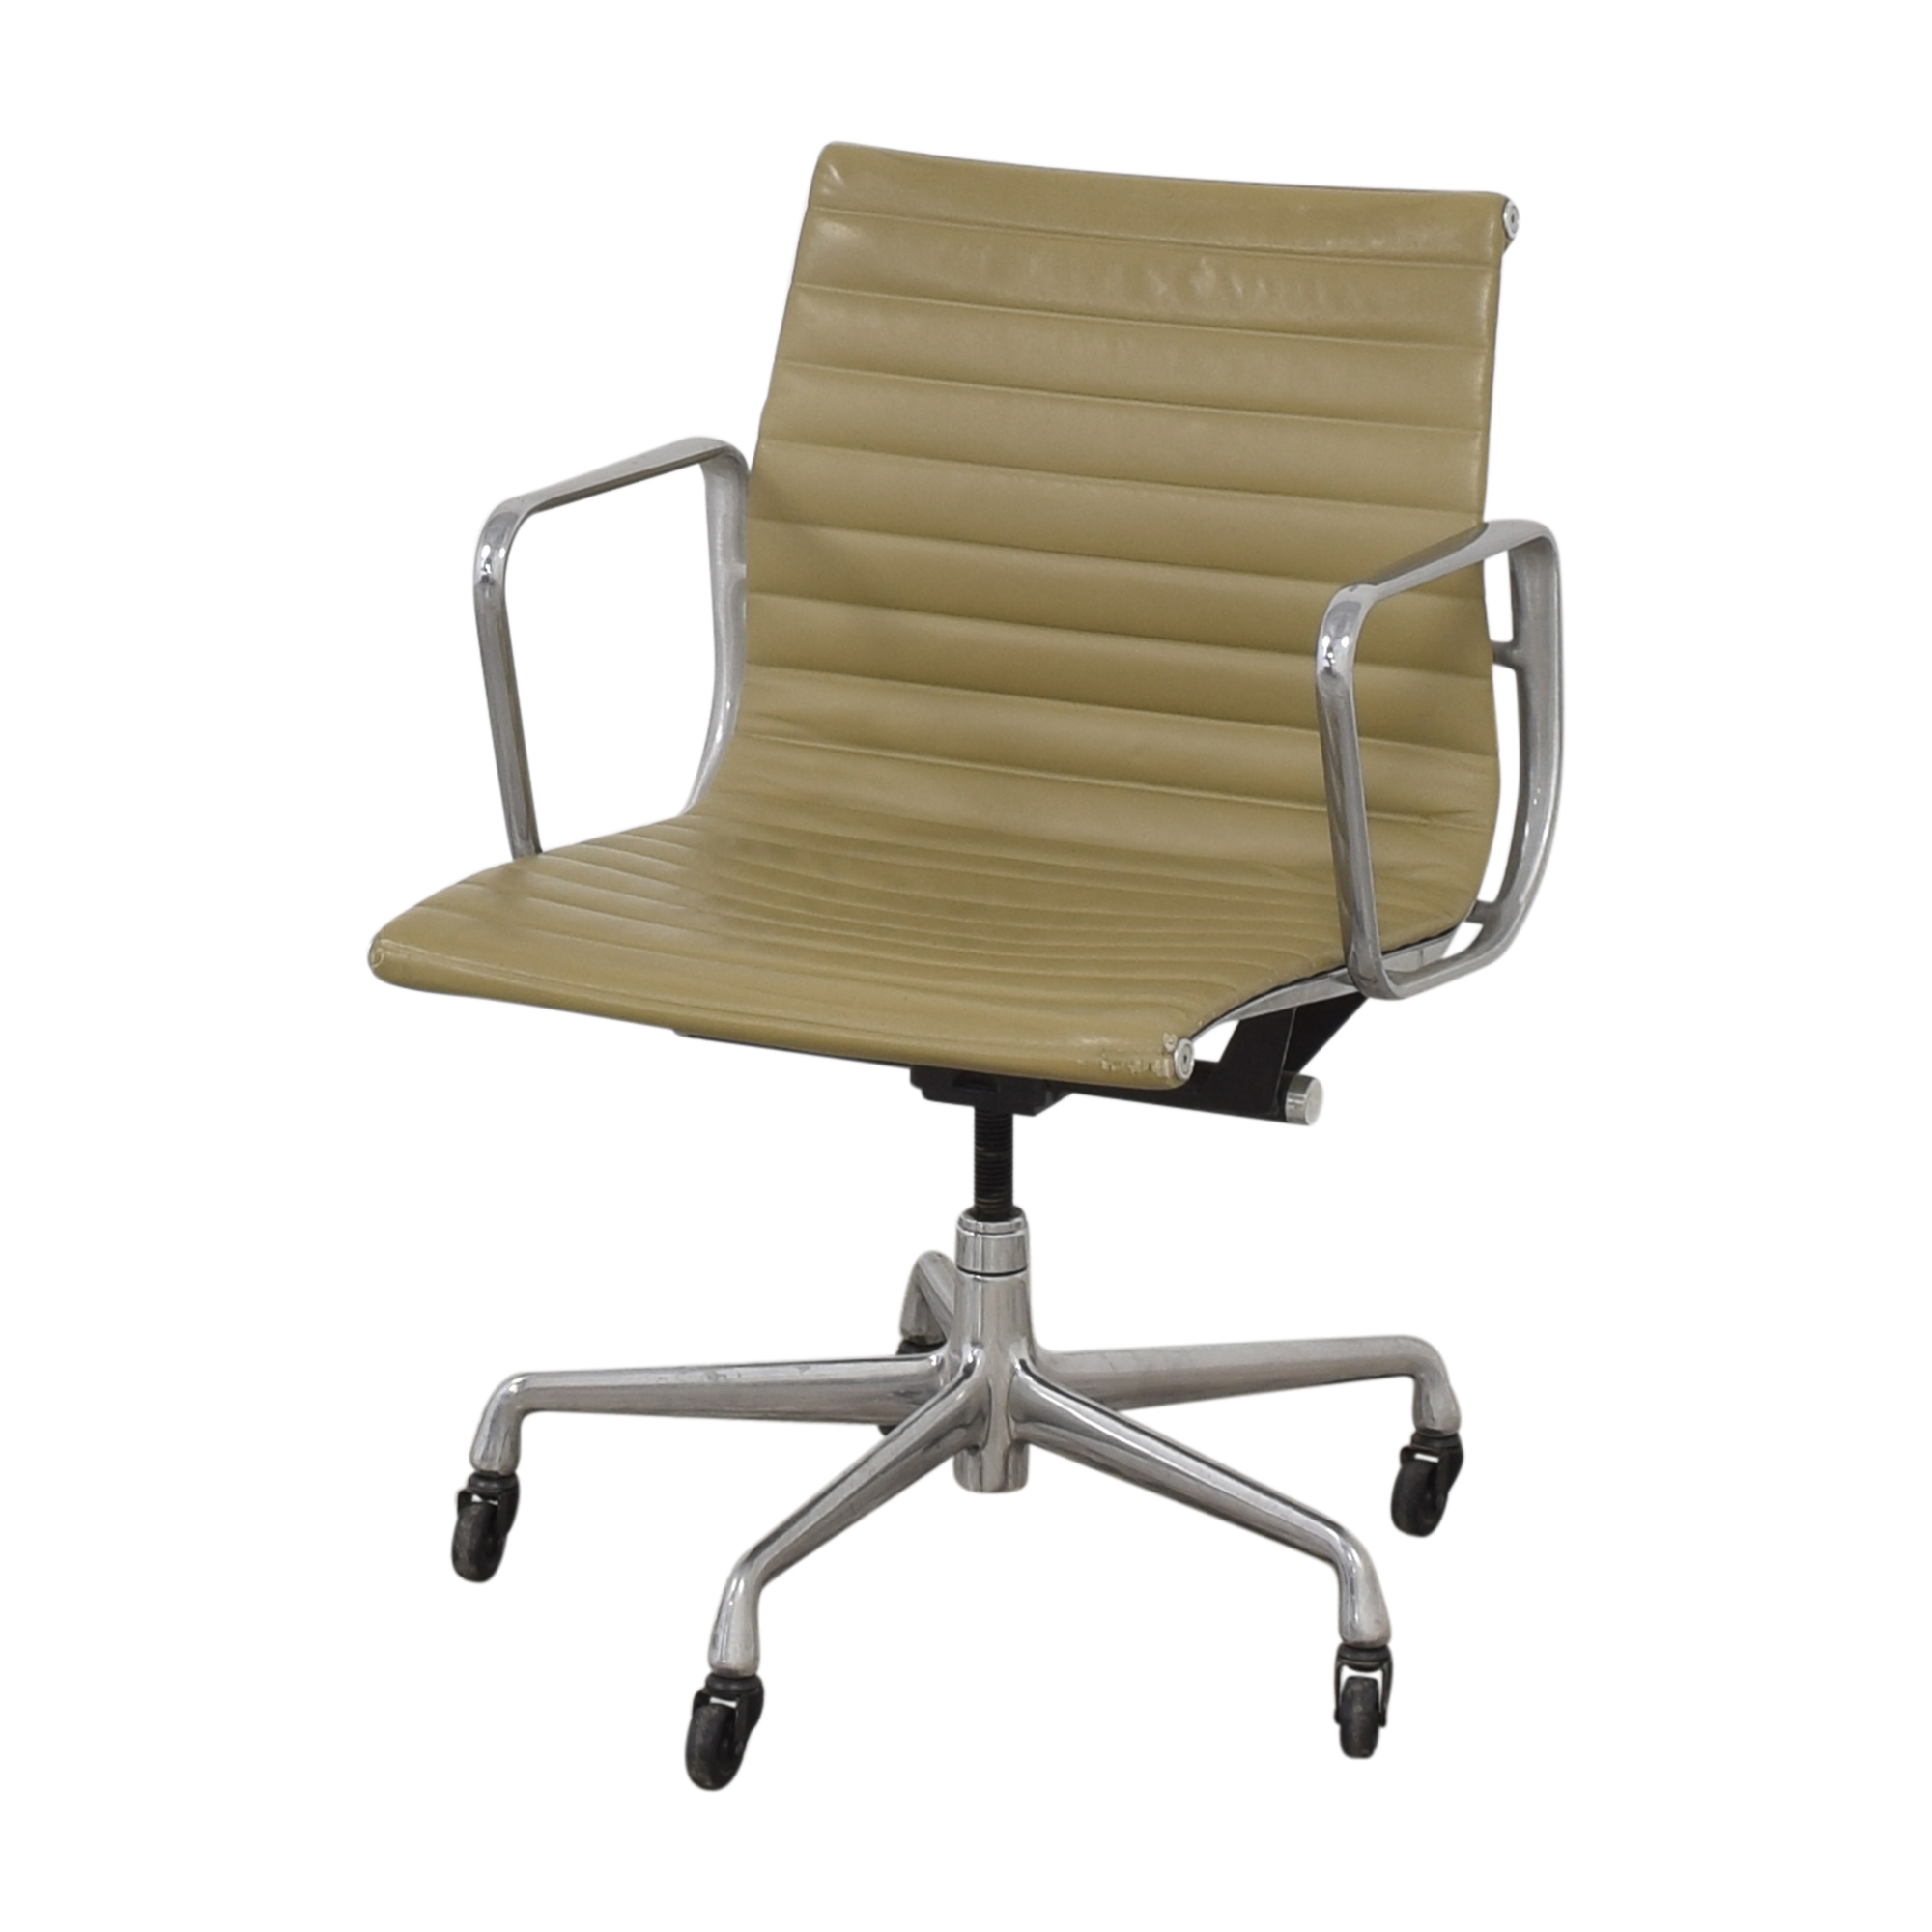 Herman Miller Herman Miller Eames Aluminum Group Management Chair dimensions